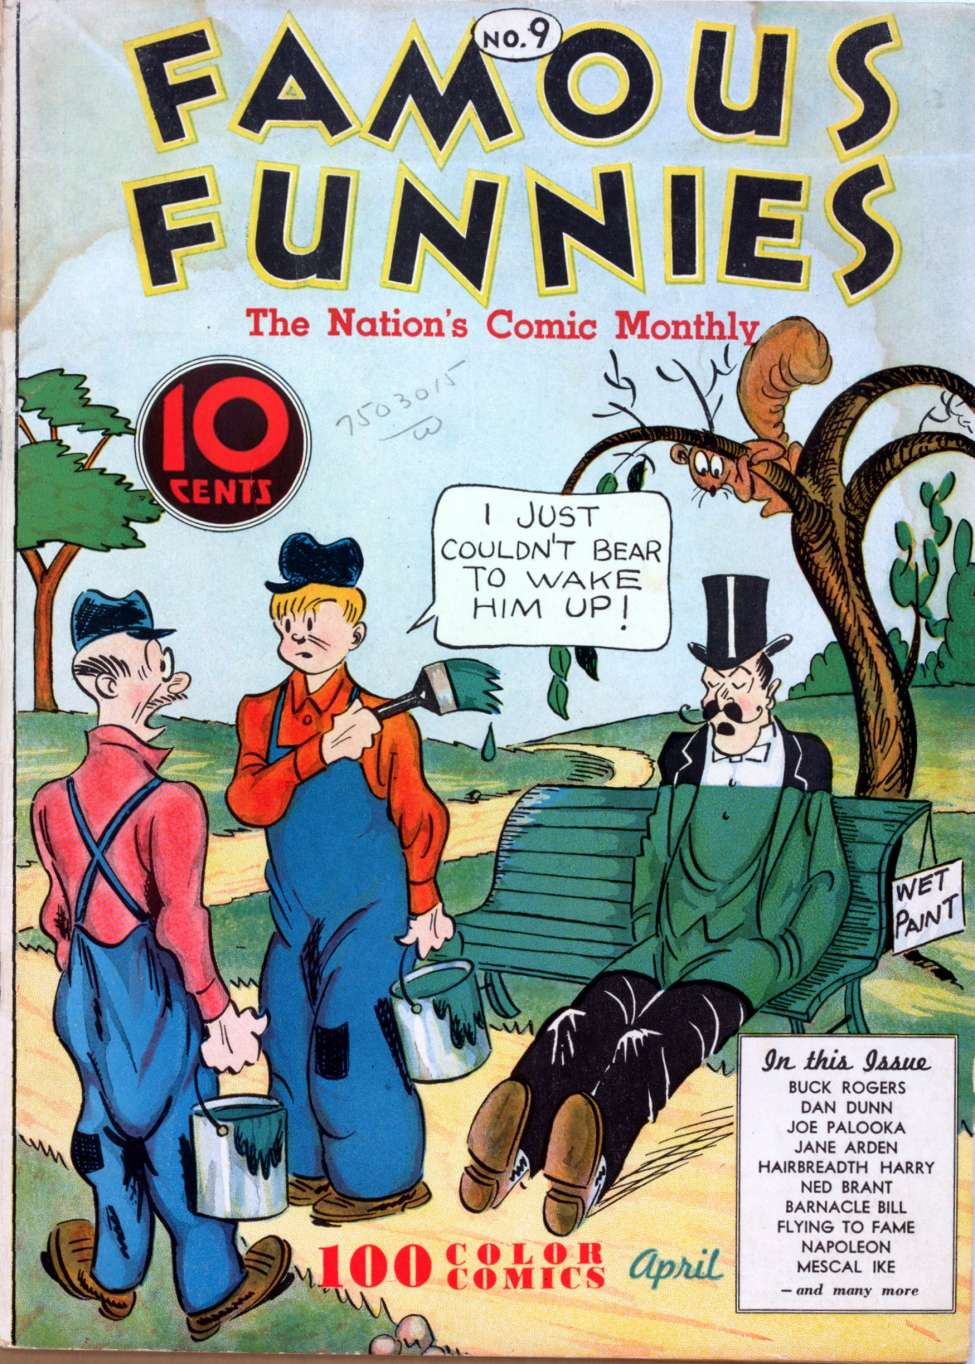 Comic Book Cover For Famous Funnies #9